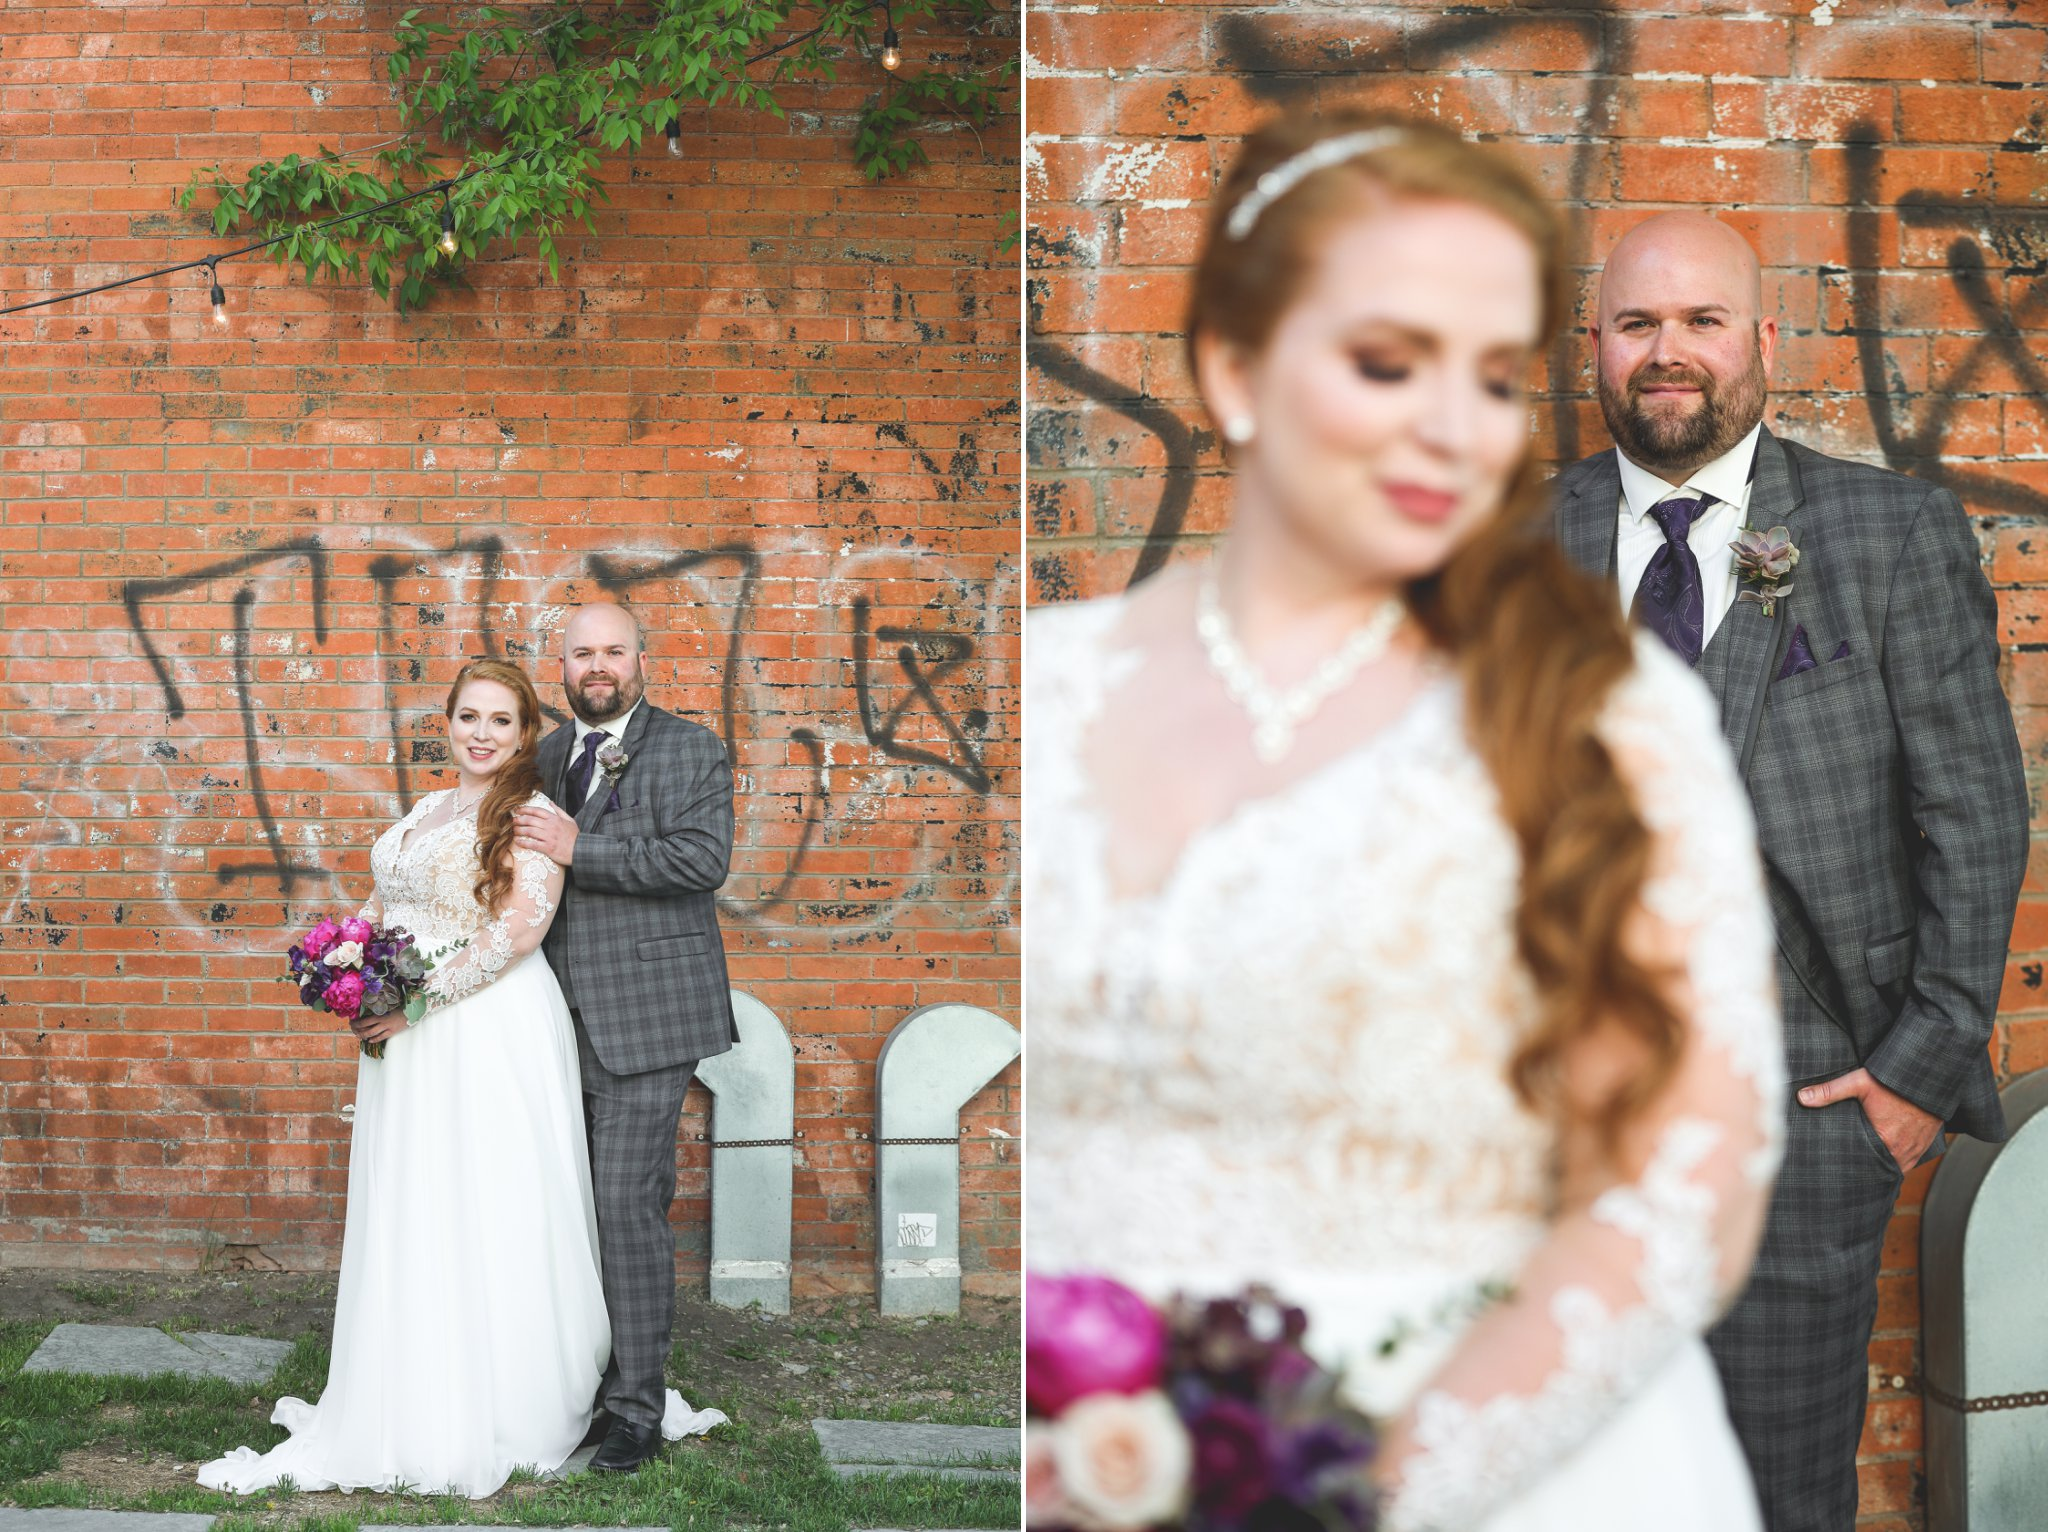 AshleyDaphnePhotography Calgary Wedding Photographer Rouge Inglewood Bride Groom Photography_0023.jpg